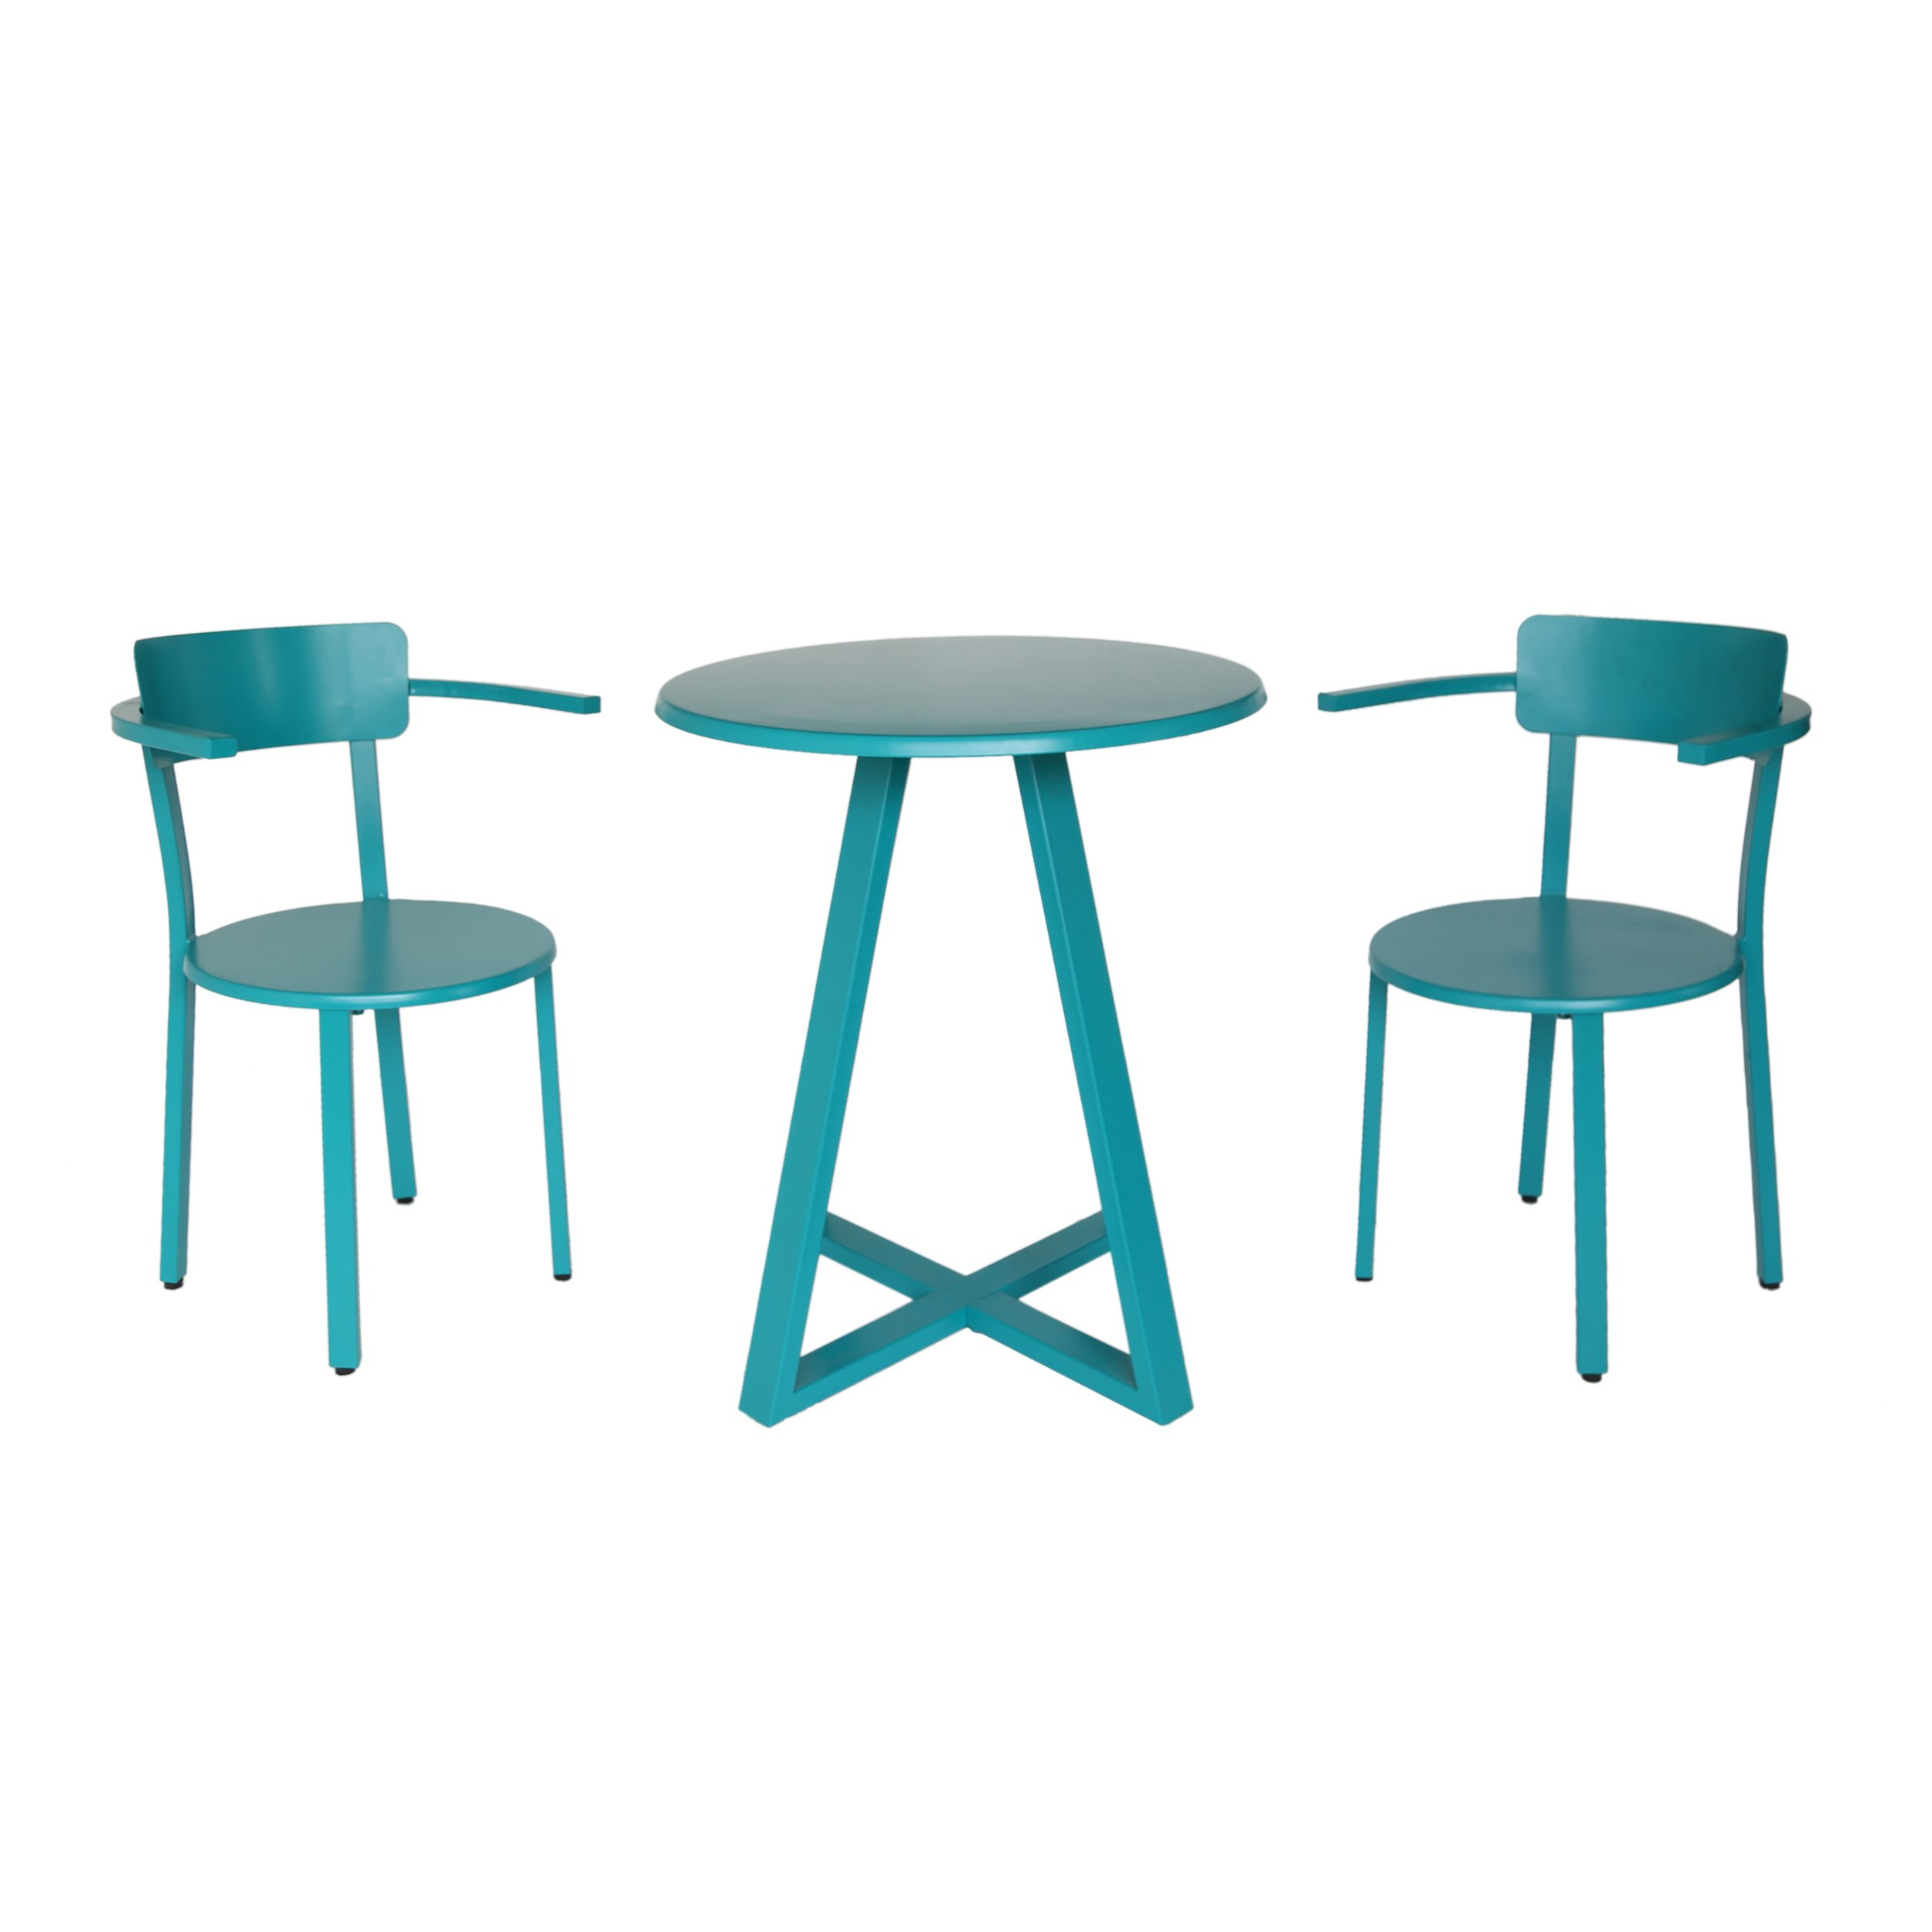 Great Deal Furniture Kate Outdoor Iron Bistro Set, Matte Teal by Great Deal Furniture (Image #7)